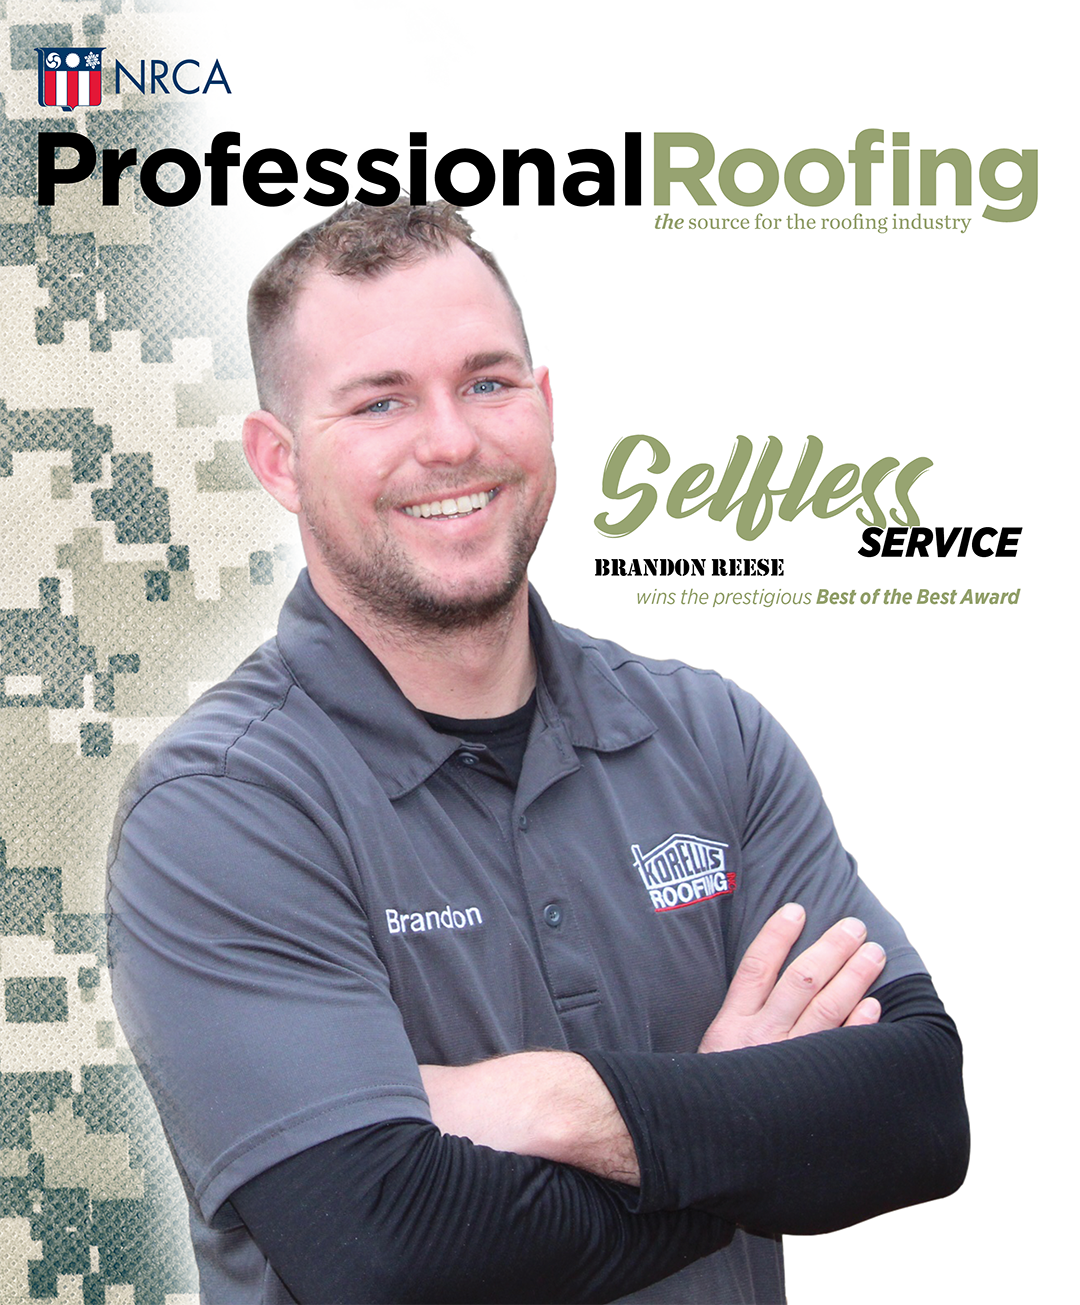 Professional Roofing Magazine 4/1/2019